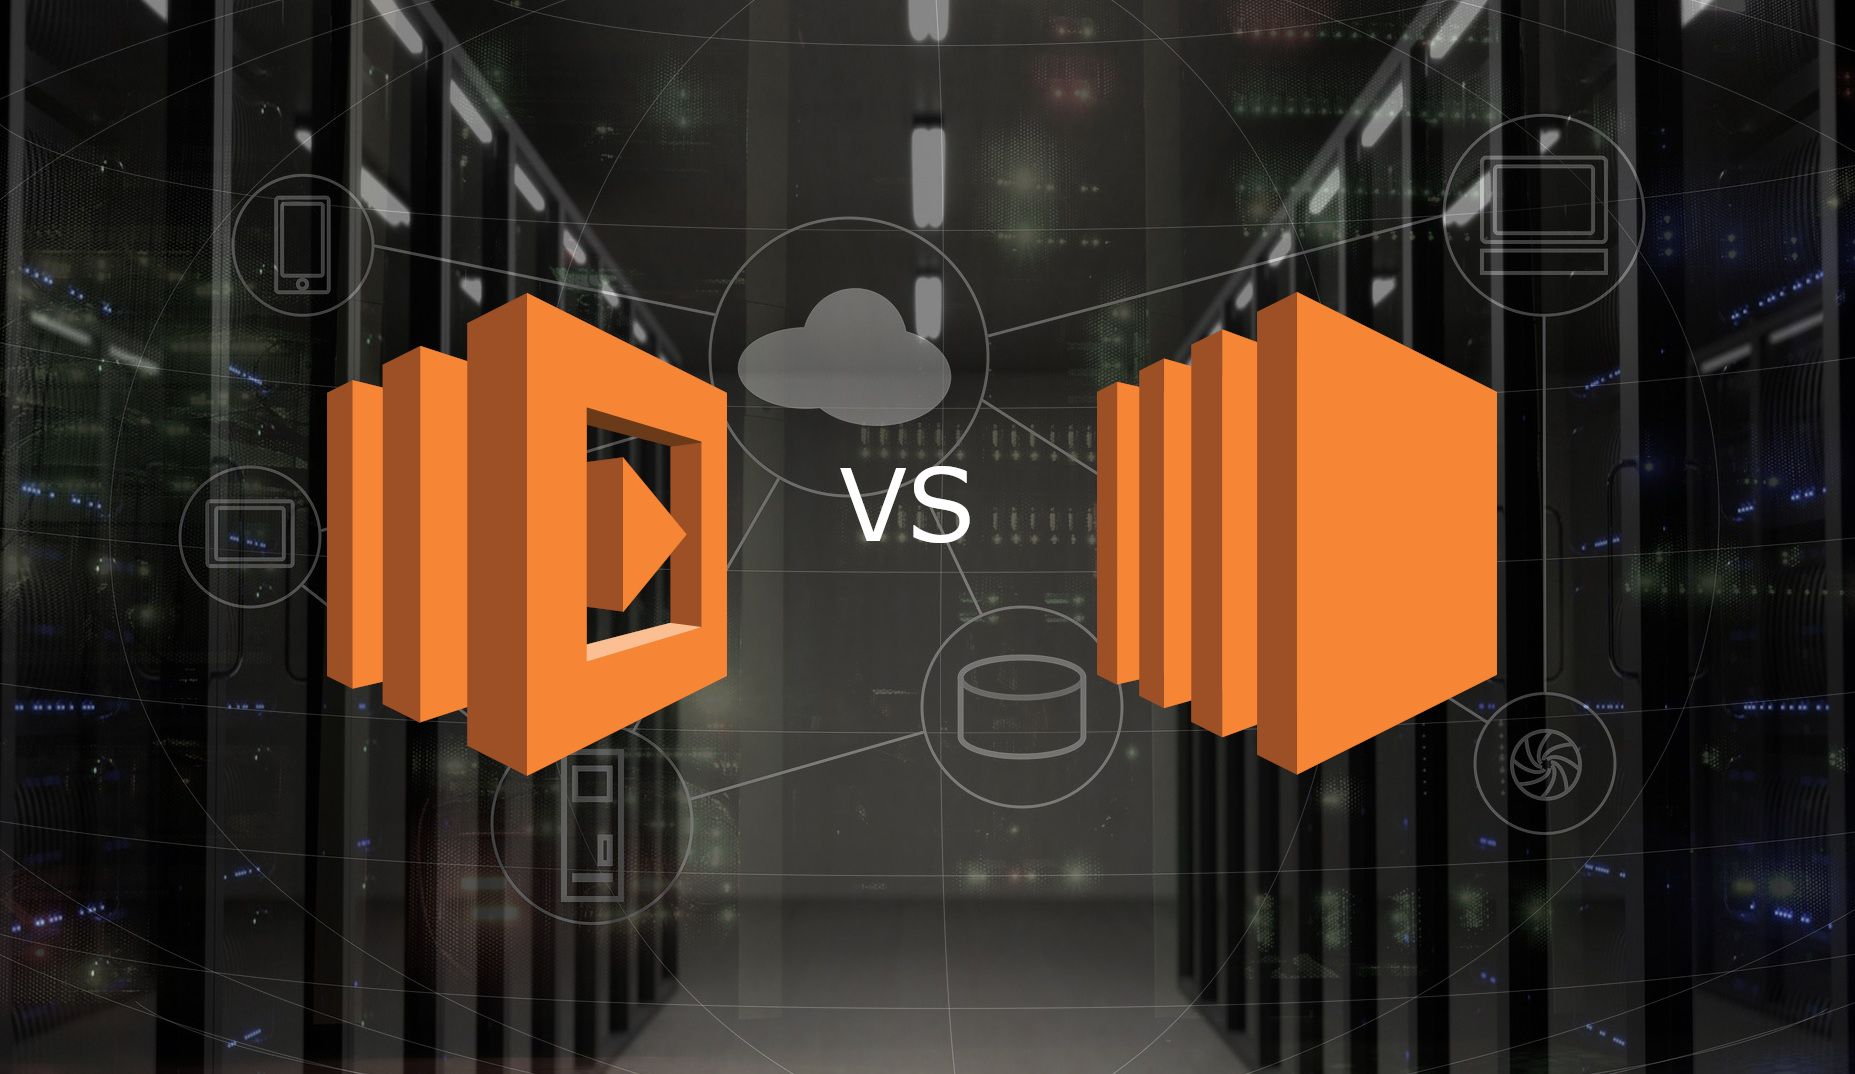 Cloud computing showdown! Amazon Web Services EC2 vs AWS Lambda